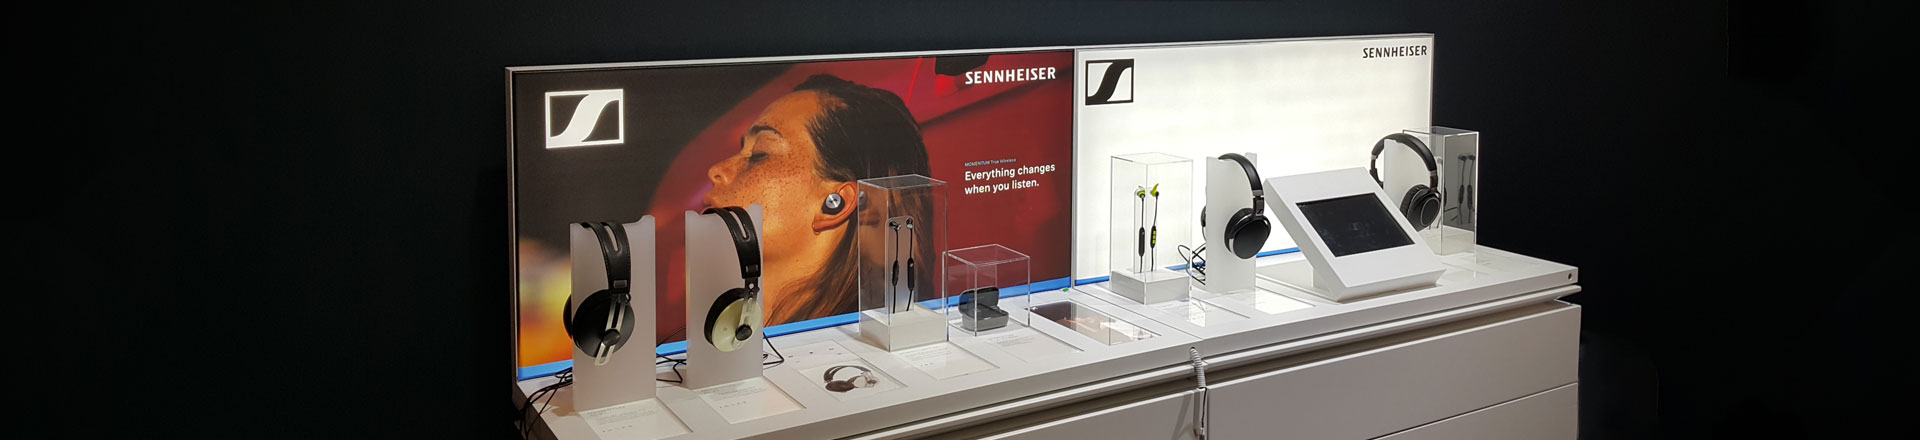 SENNHEISER zaprasza na Audio Video Show